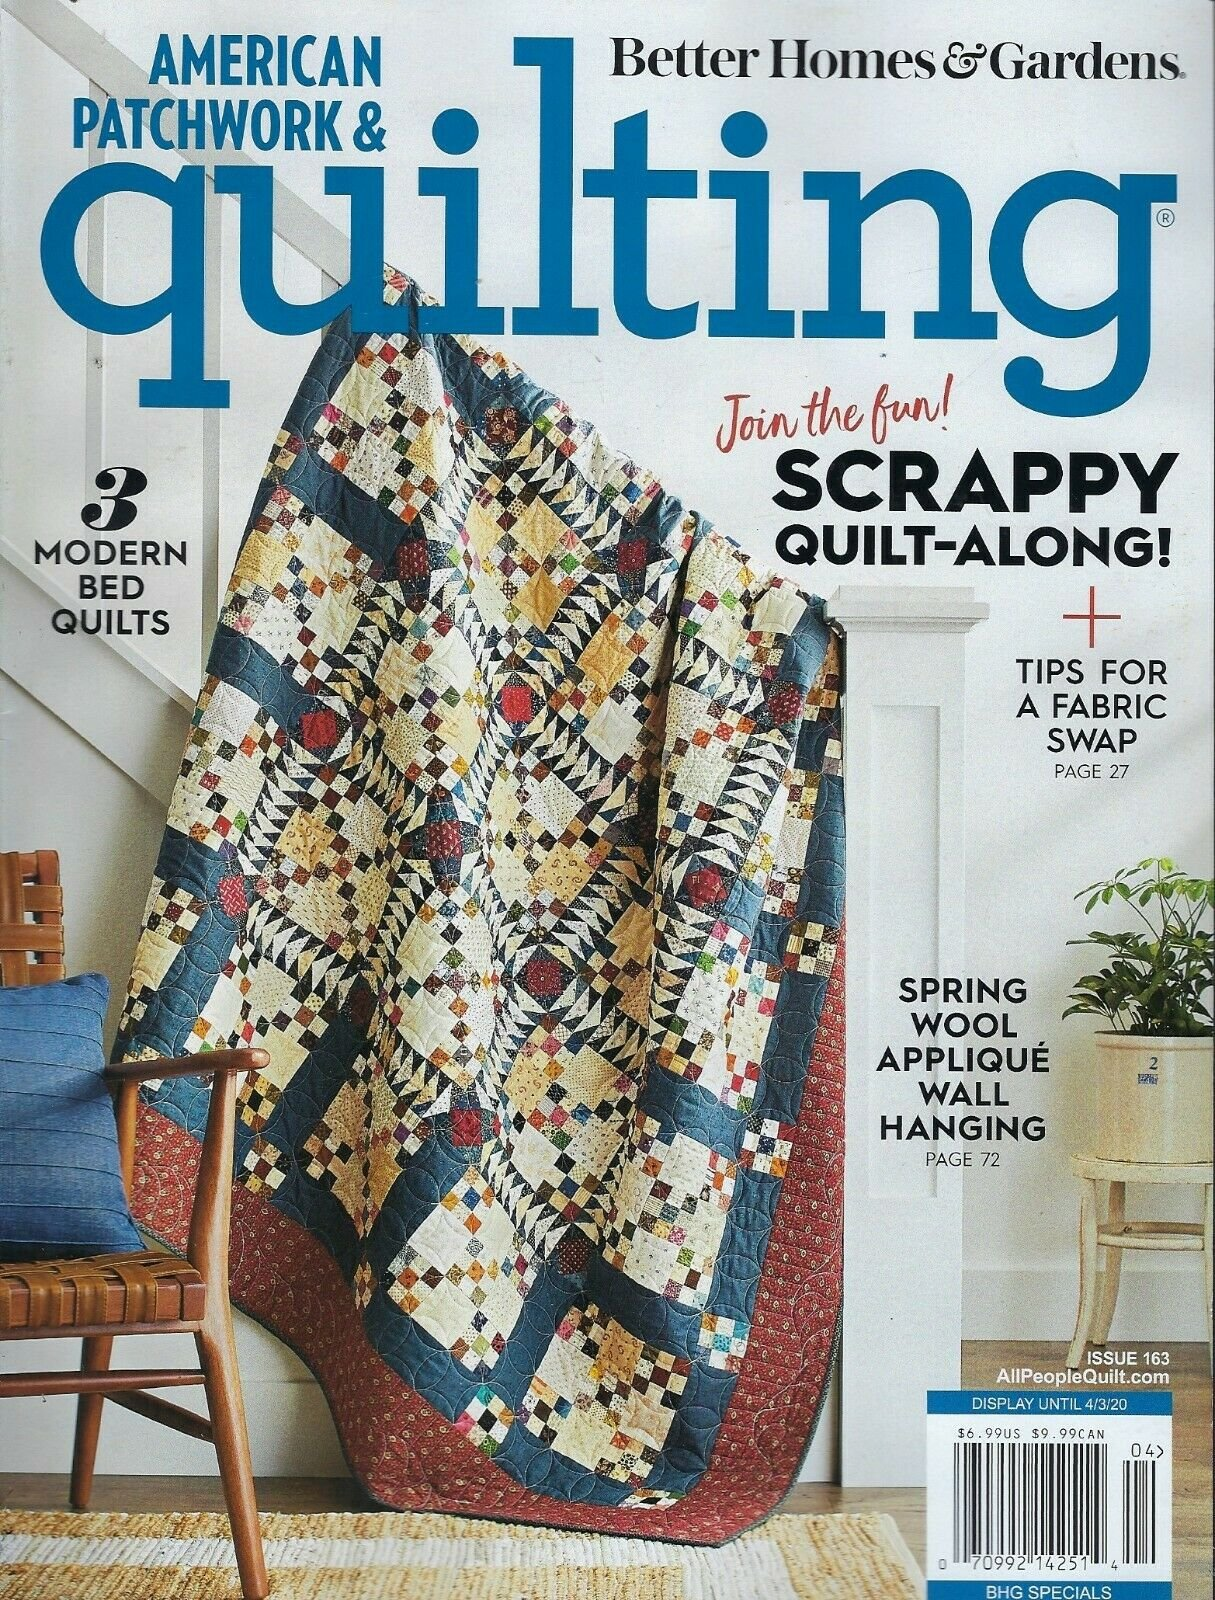 American Patchwork & Quilting Issue 163 - 2020